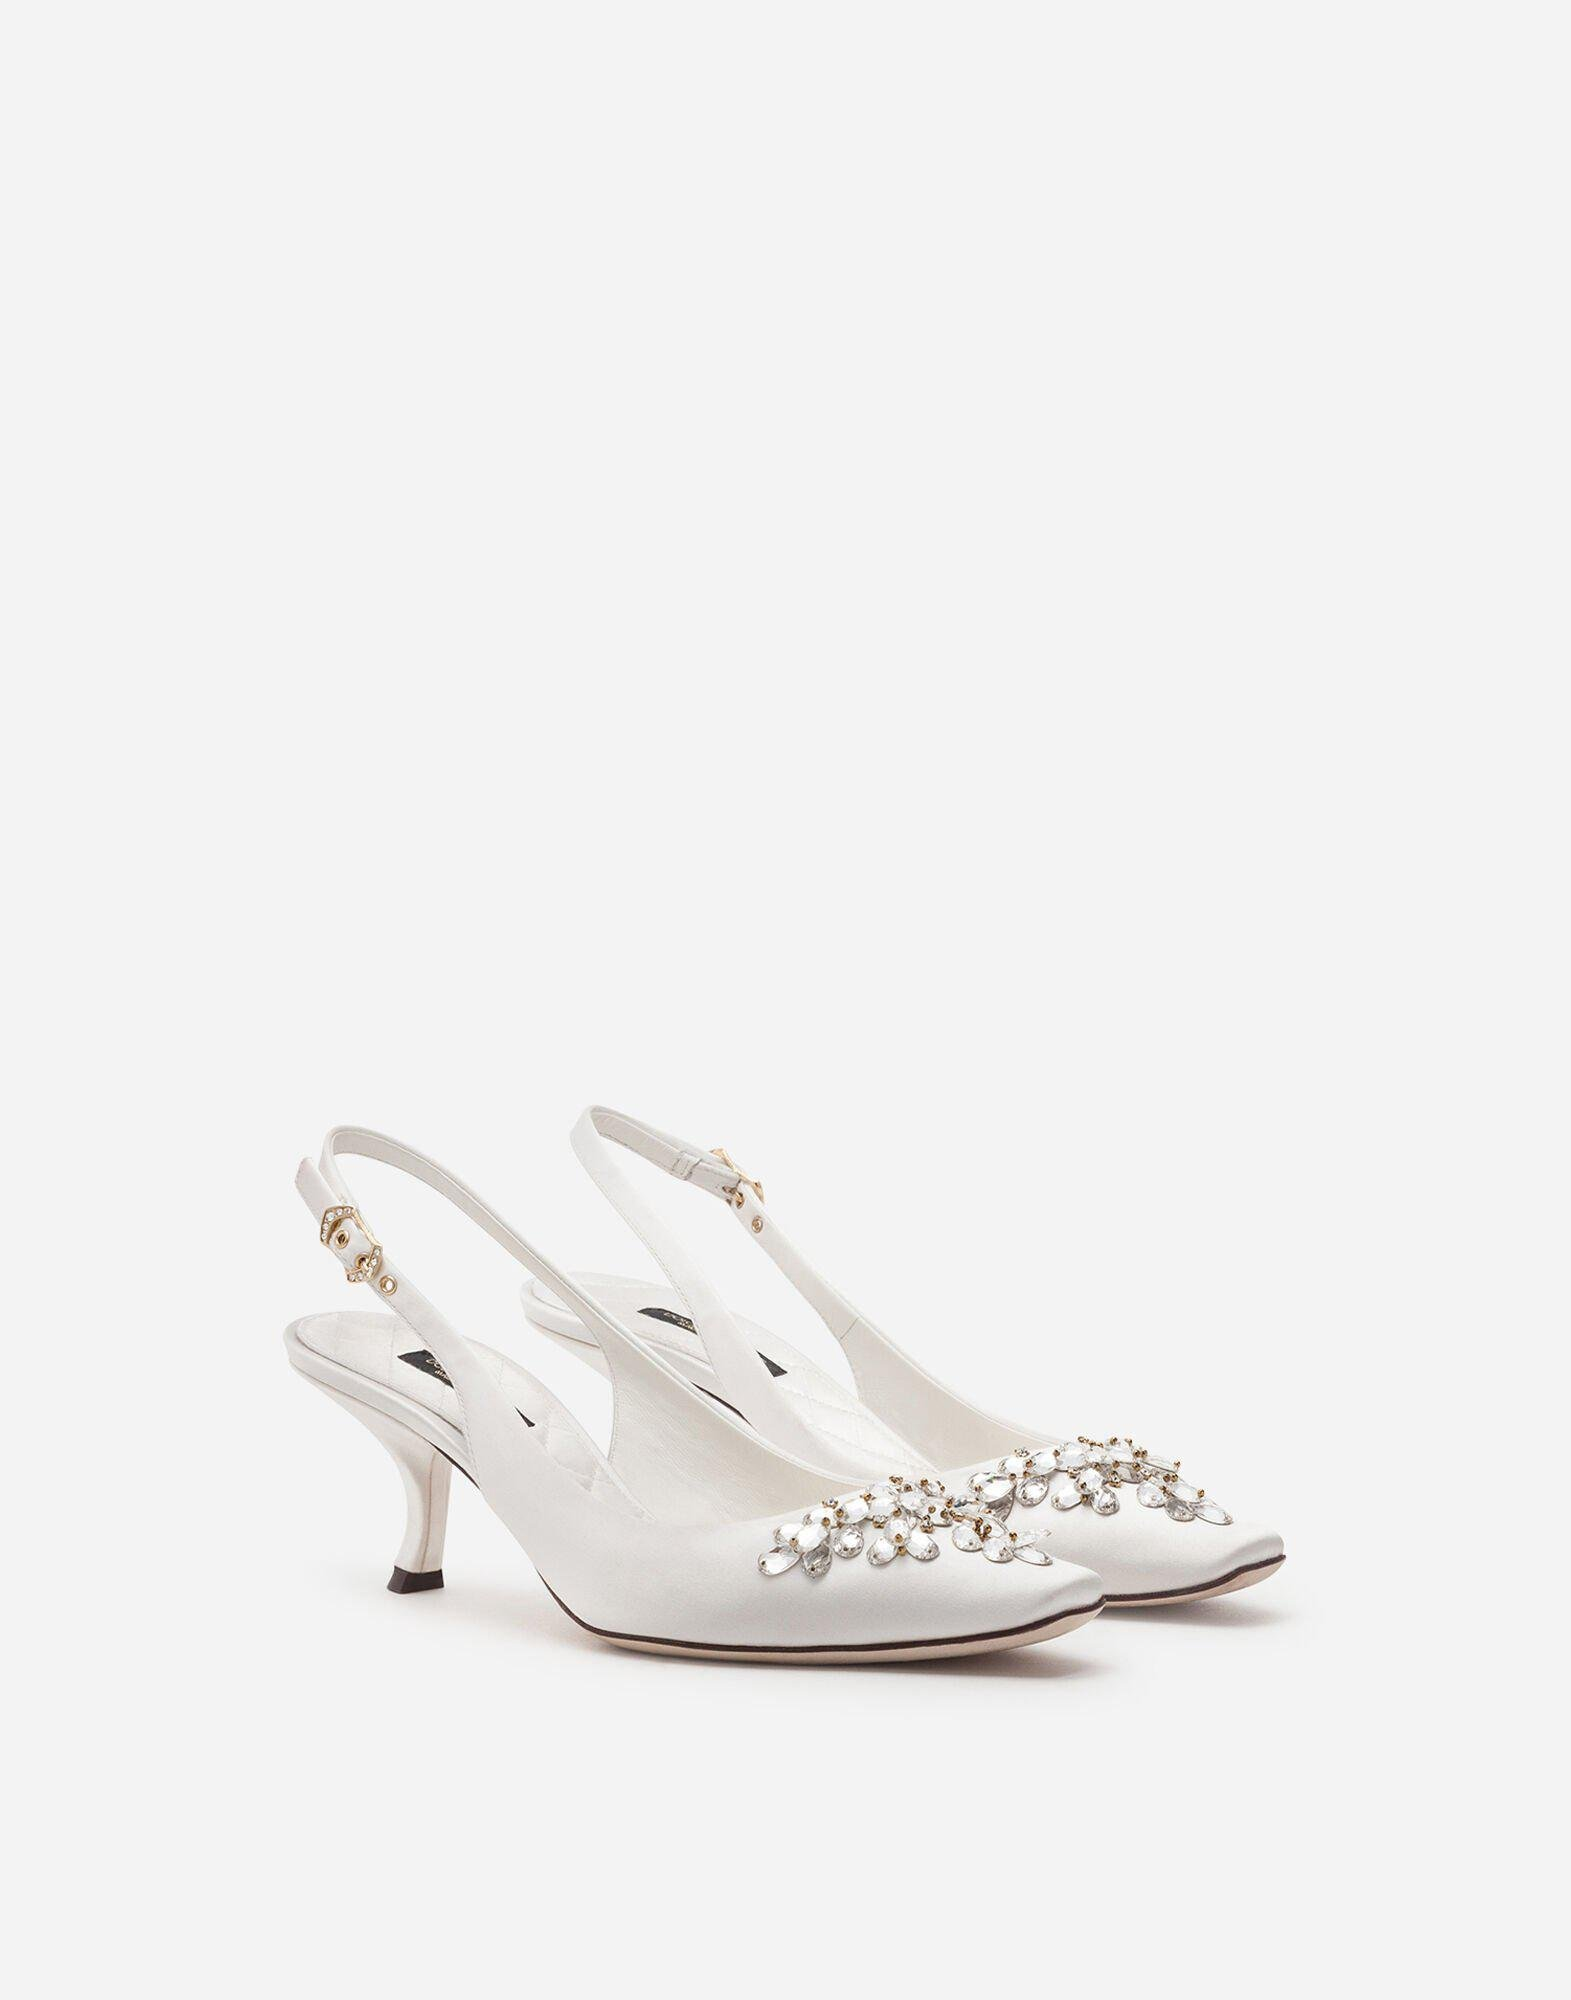 Satin sling back with bejeweled embroidery 1